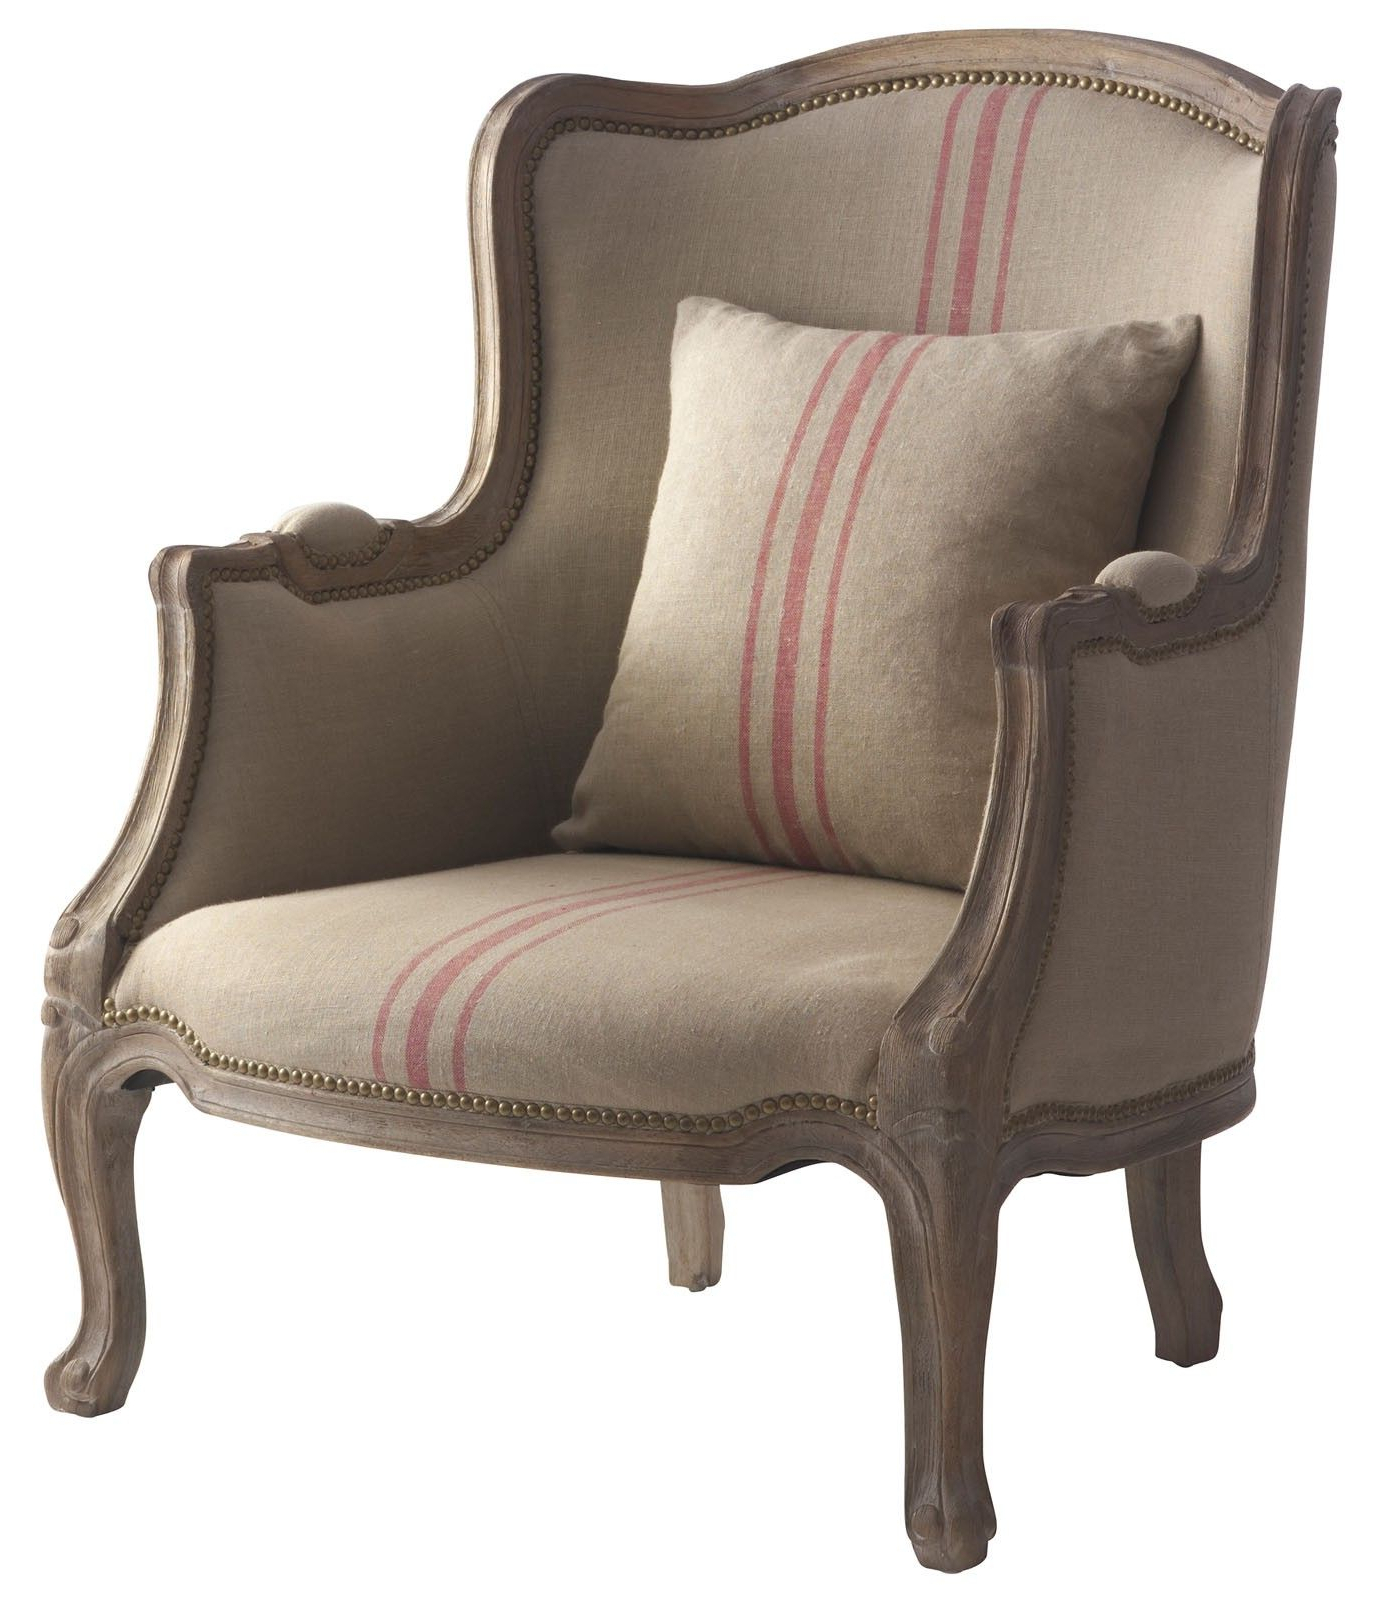 Rustic French Country, French Country Linen Throughout Most Up To Date Ragsdale Armchairs (View 17 of 20)